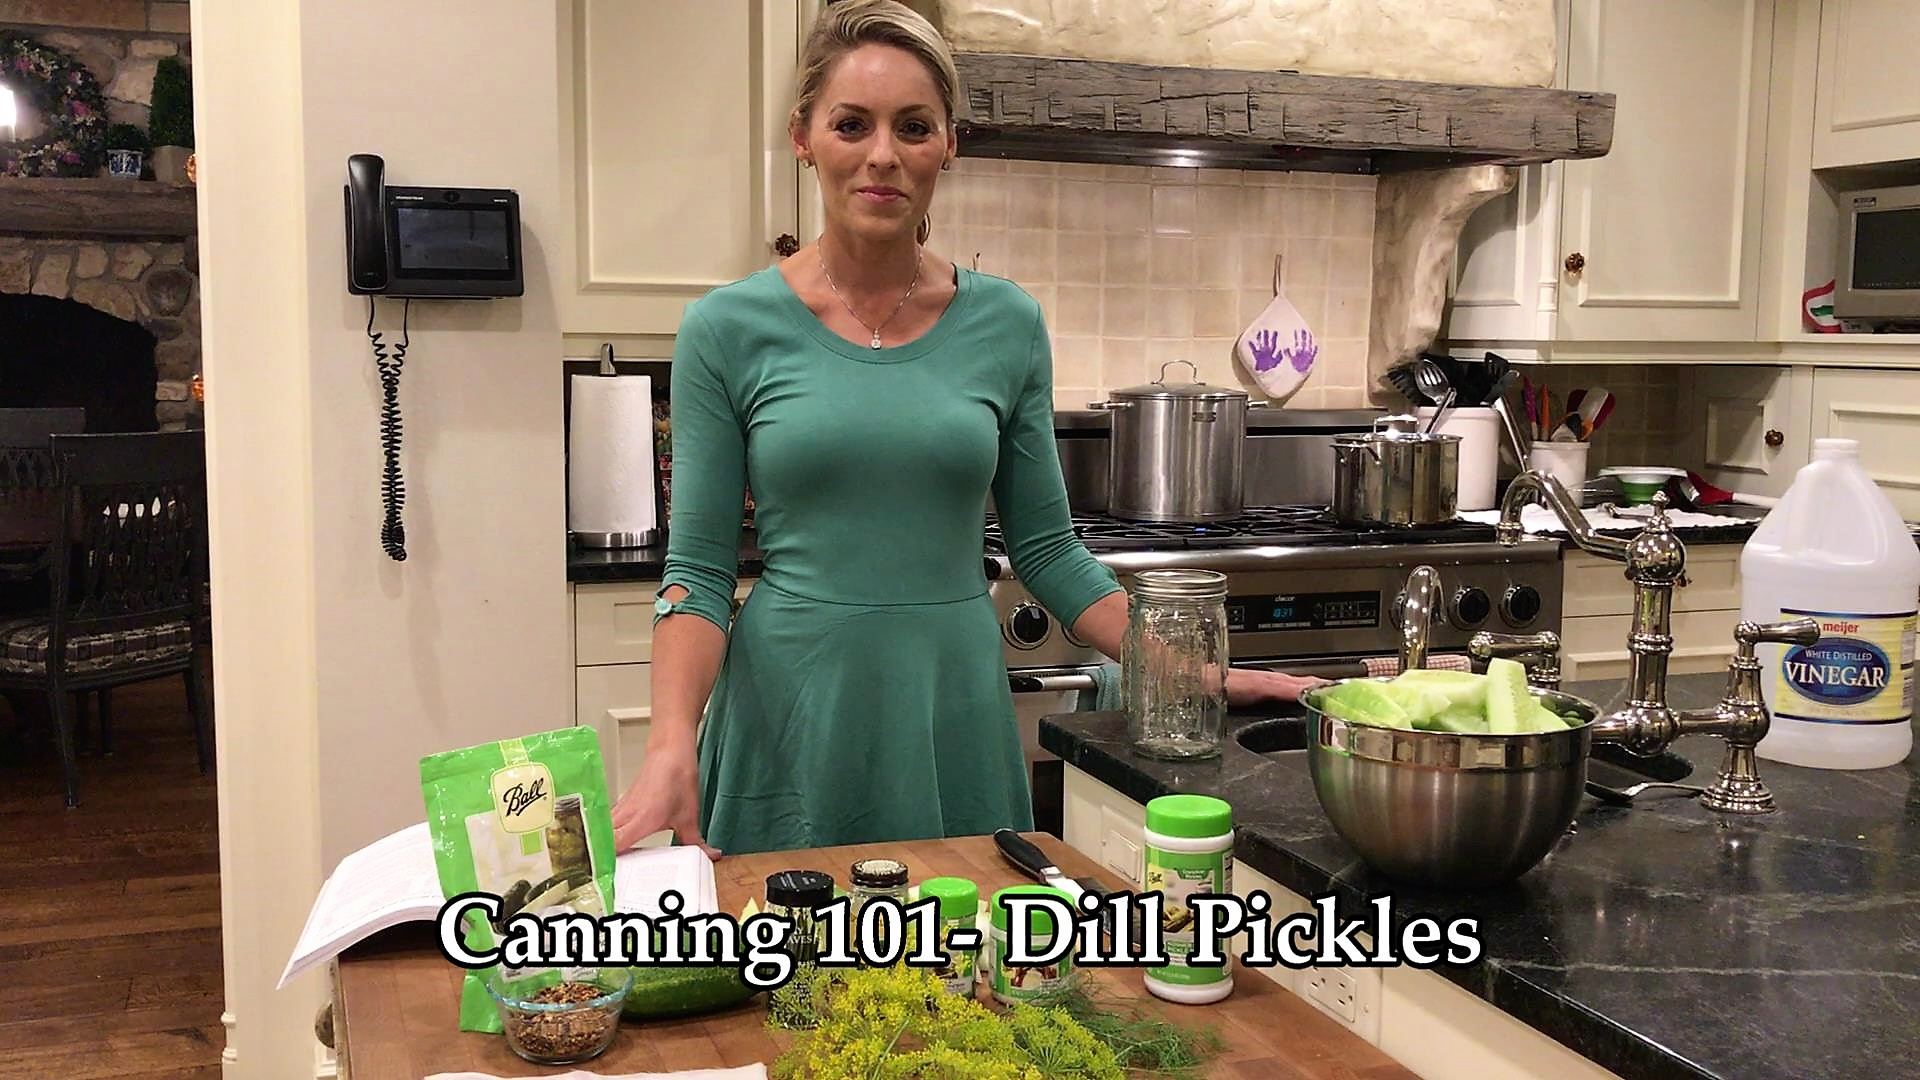 Canning 101 Video- Easy Dill Pickles